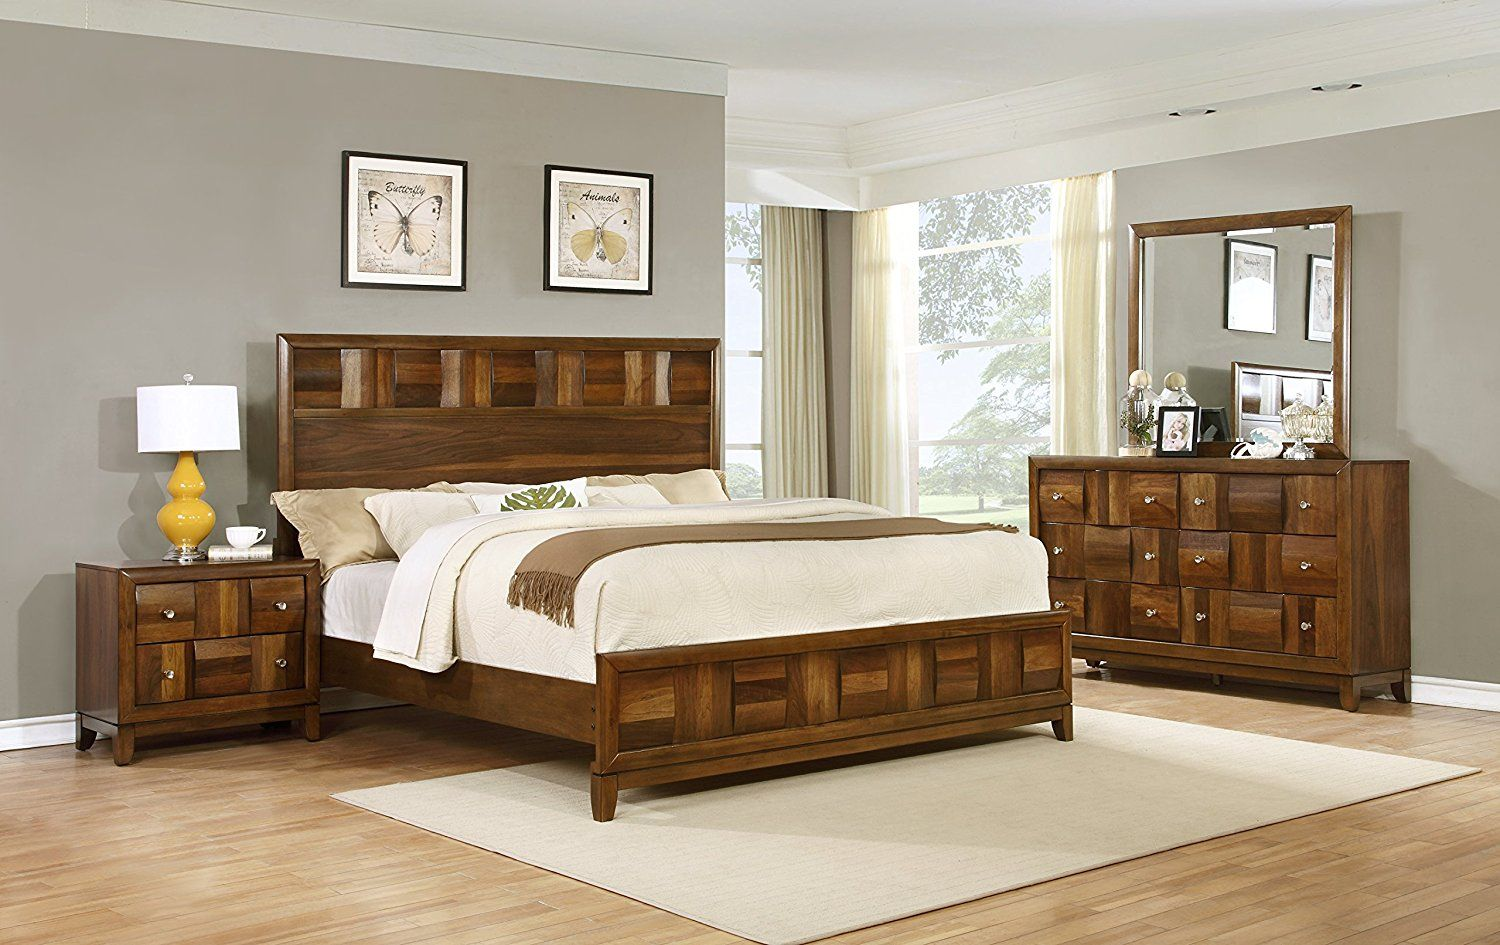 Roundhill Furniture Calais Solid Wood Construction Bedroom Set with ...